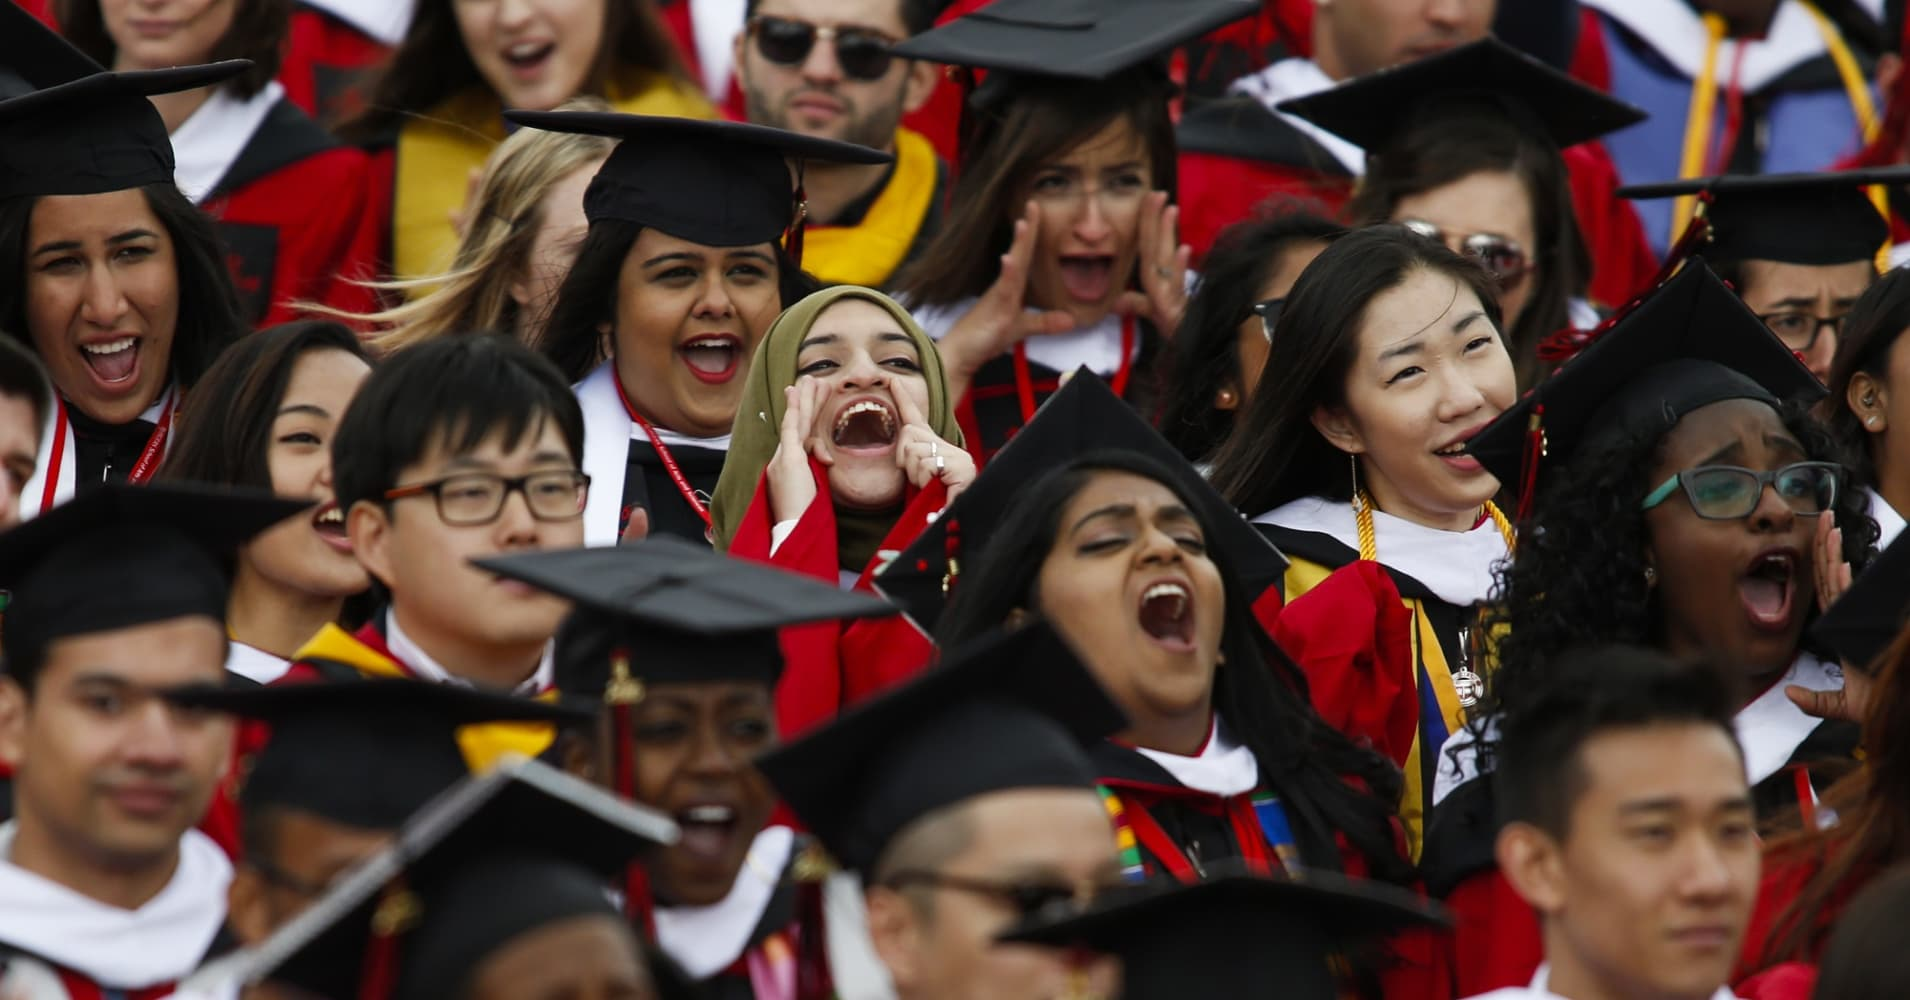 Commencement ceremony at Rutgers University